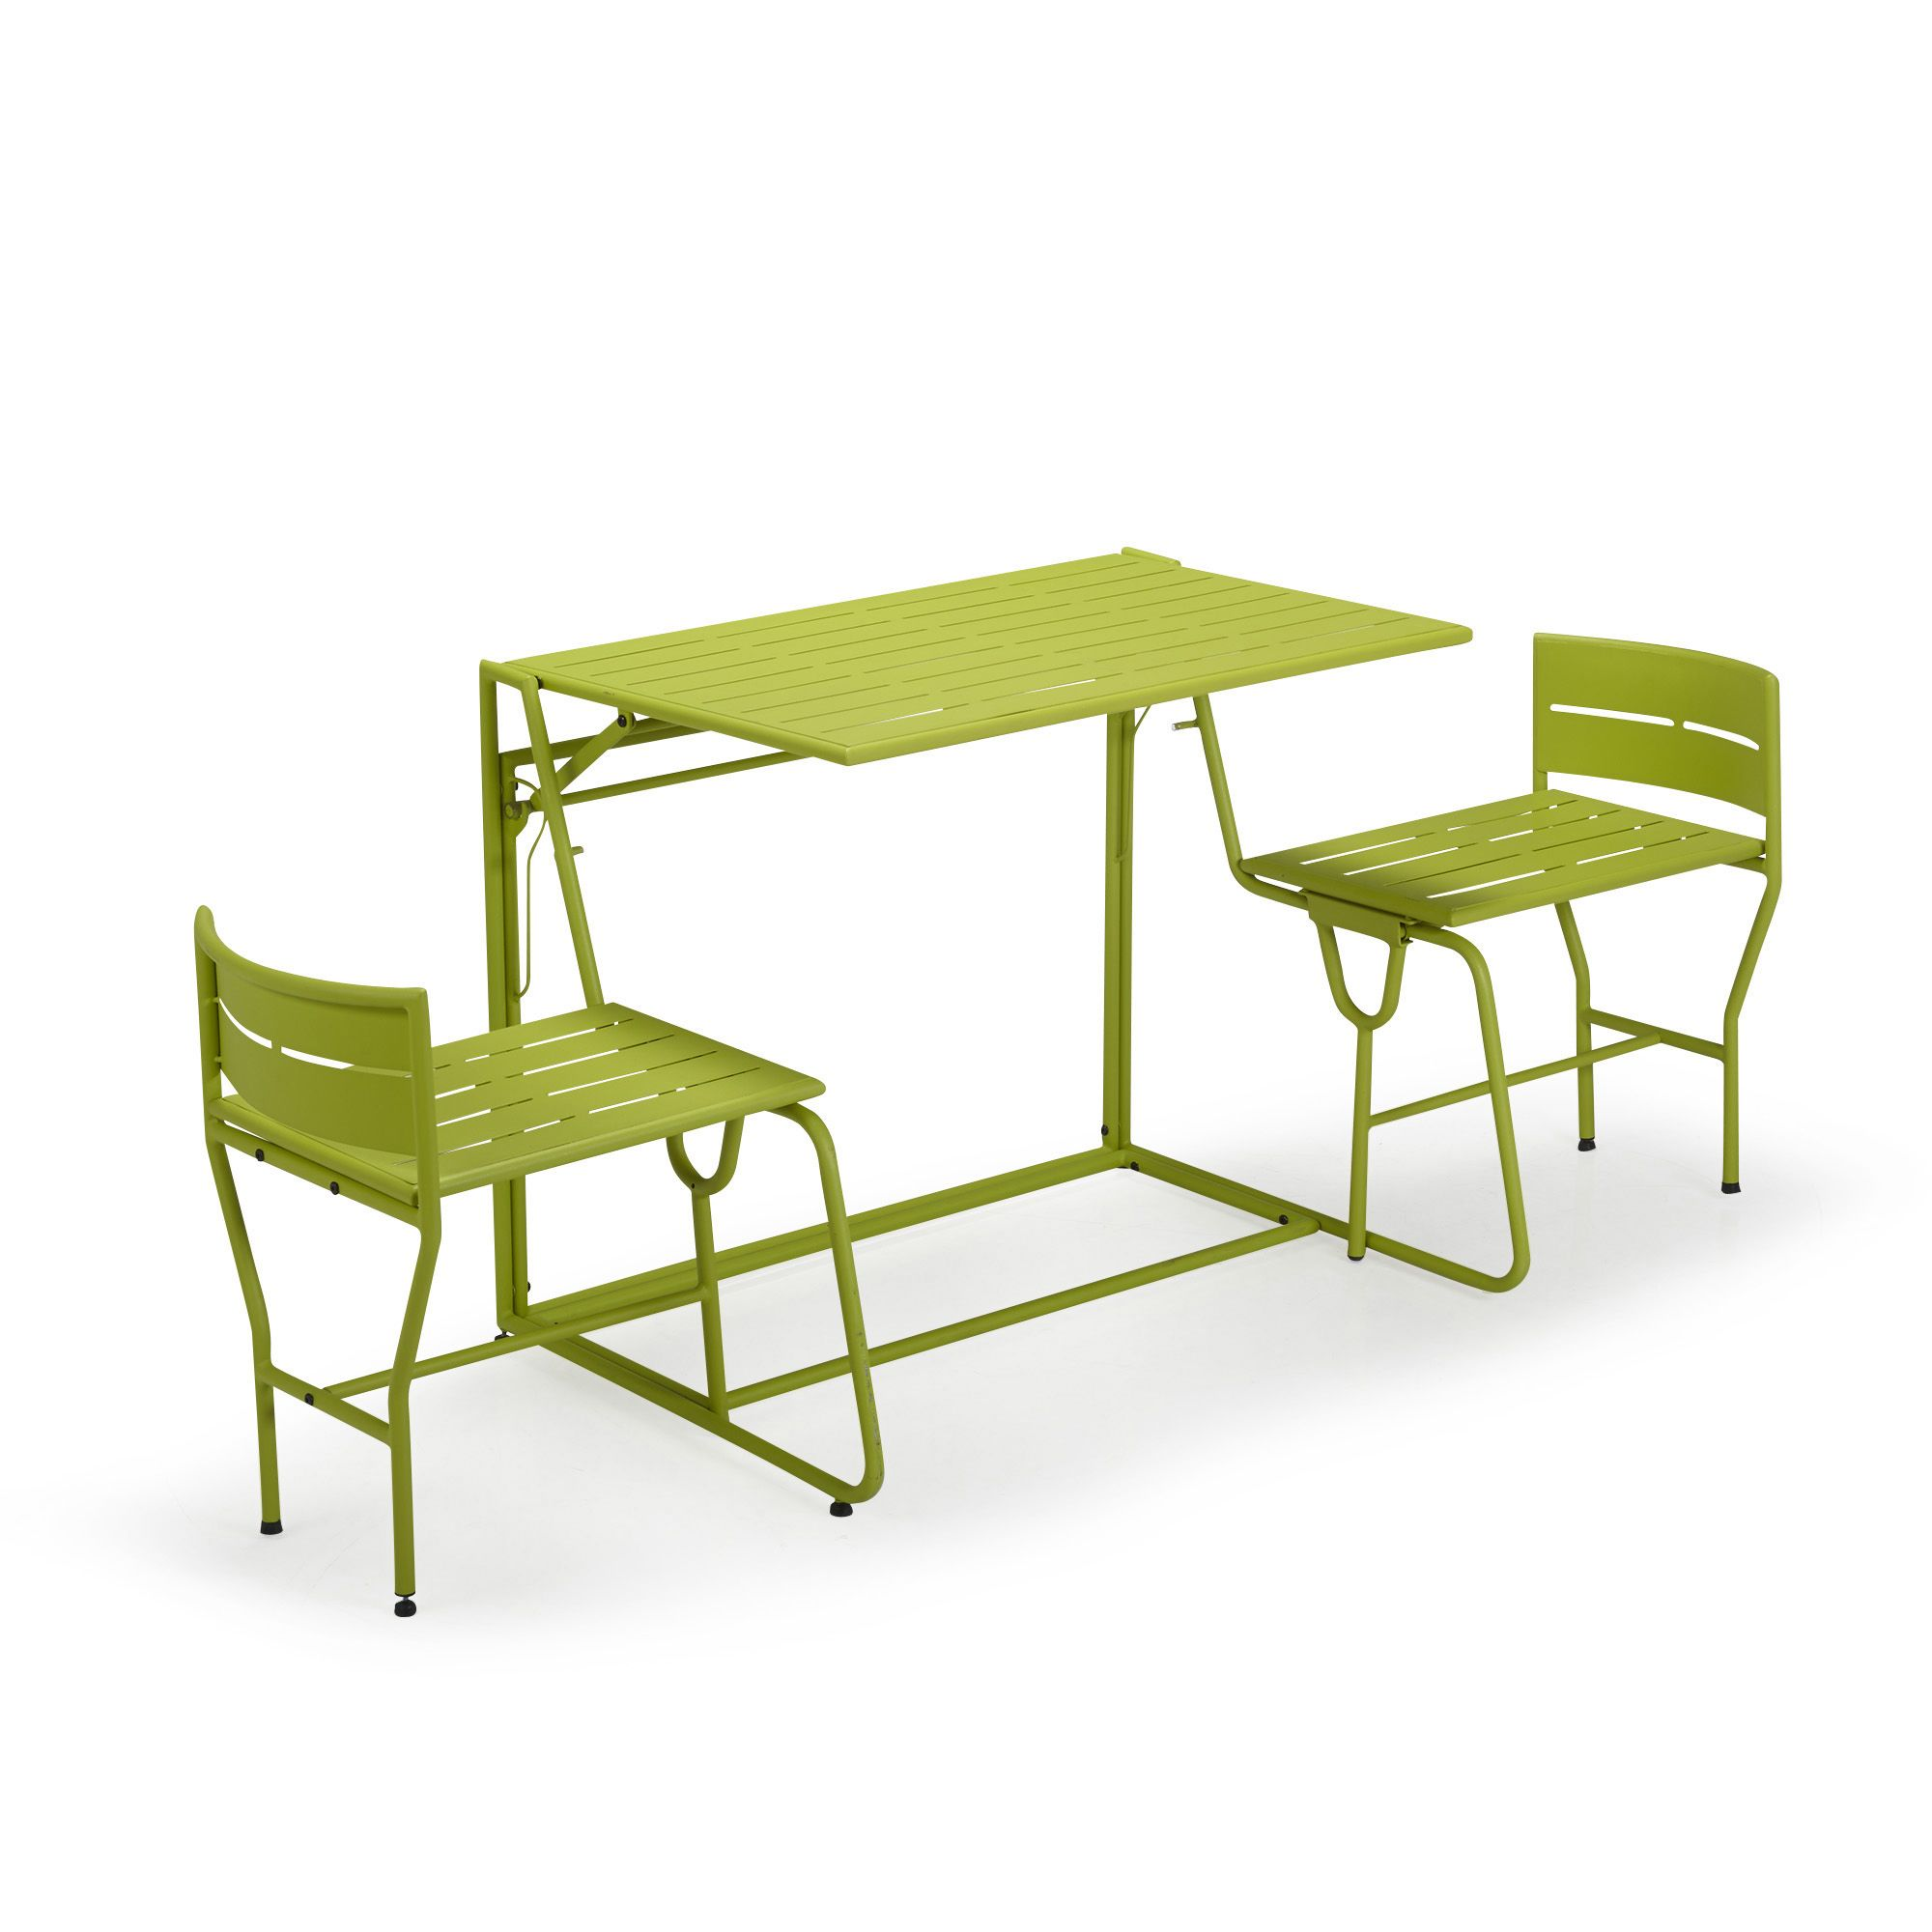 Picnic le salon de jardin balcon transformable 2 en 1 for Decoration jardin balcon